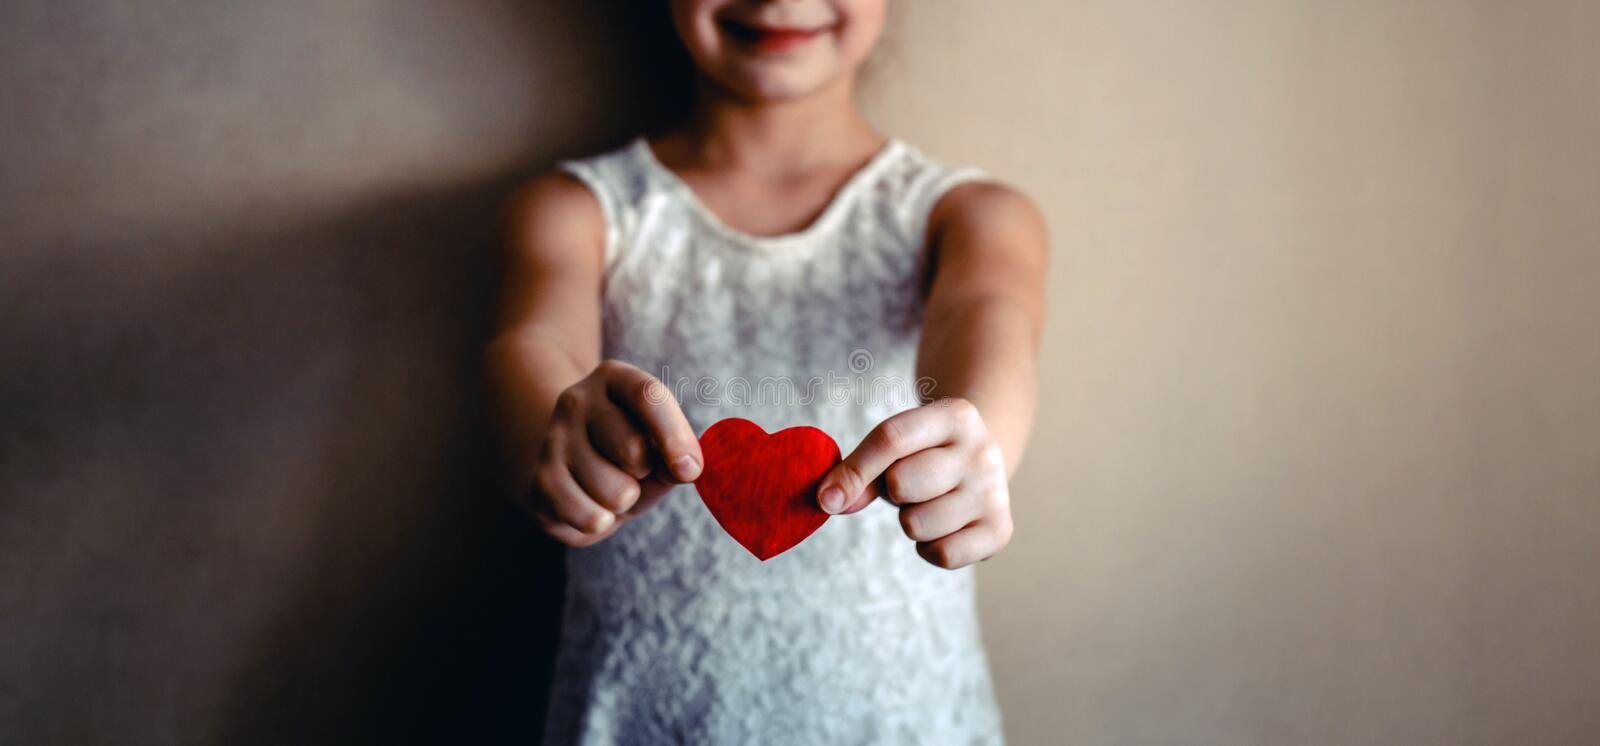 A girl with red heart in her hands. A red heart Background for Valentine day, red heart royalty free stock photos